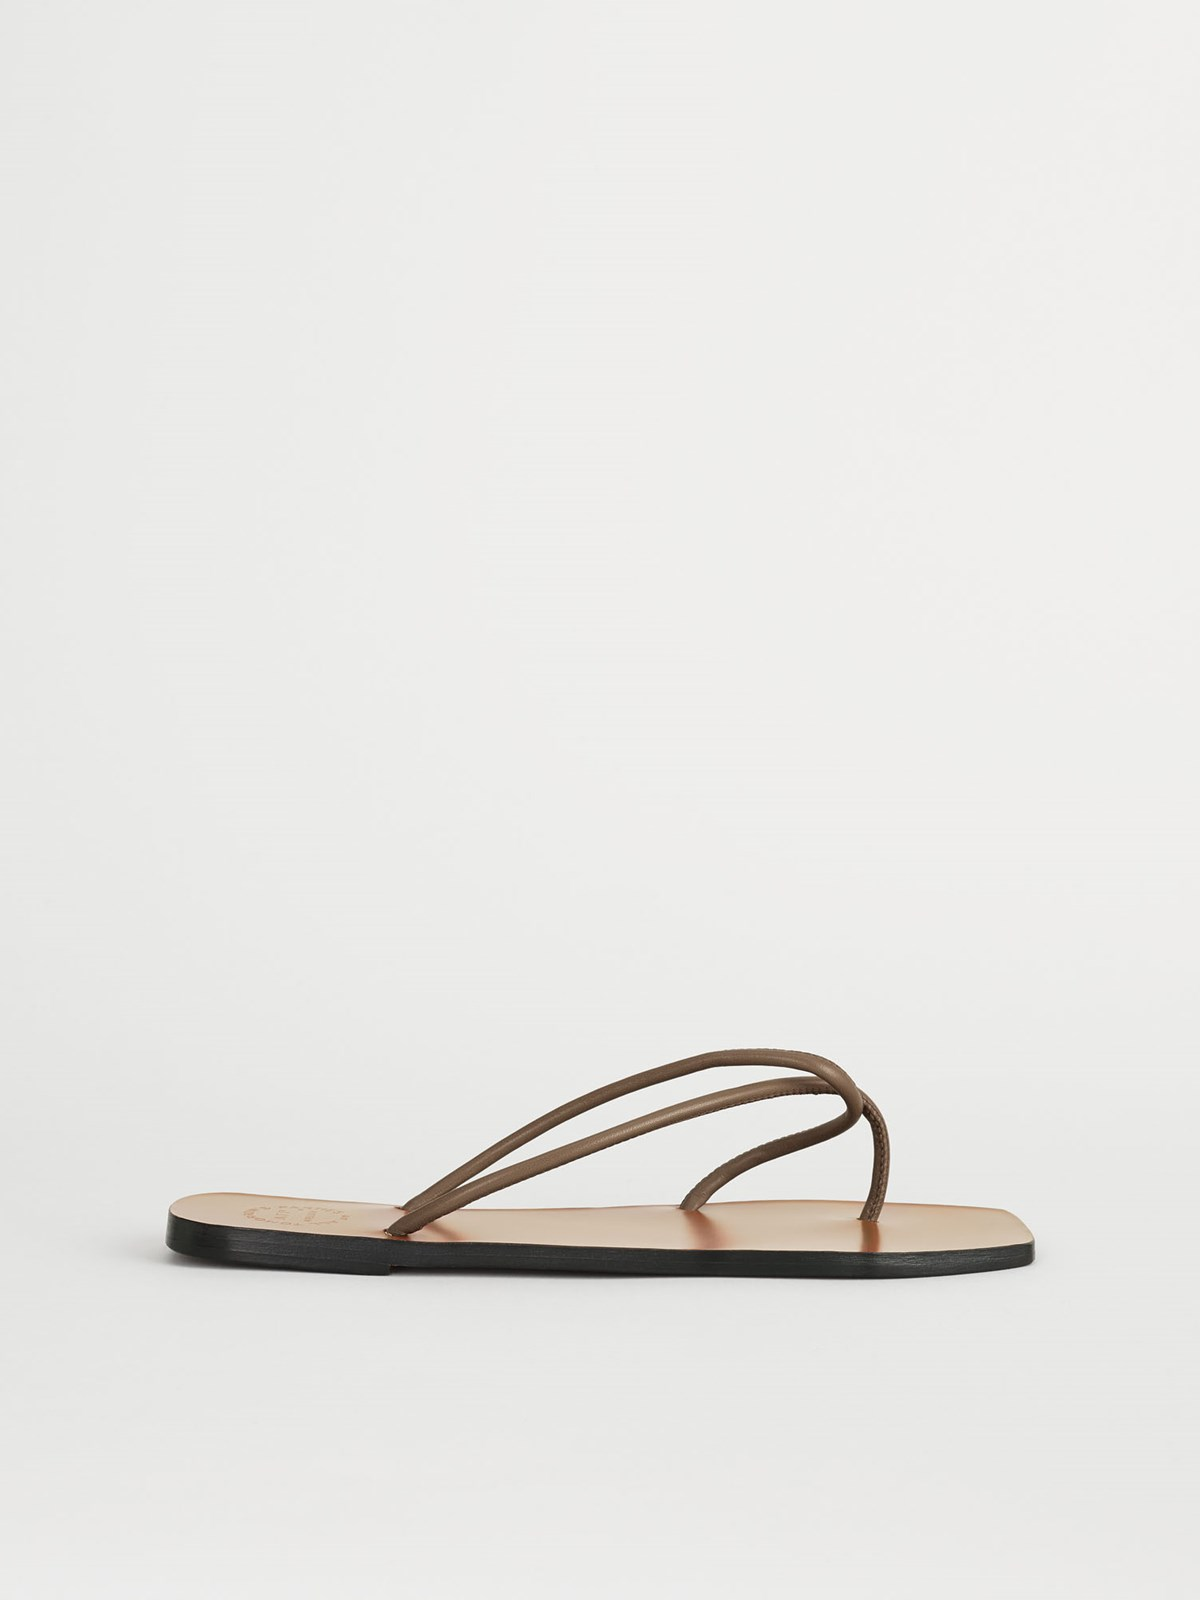 Alessano Khaki Brown Flat Sandals